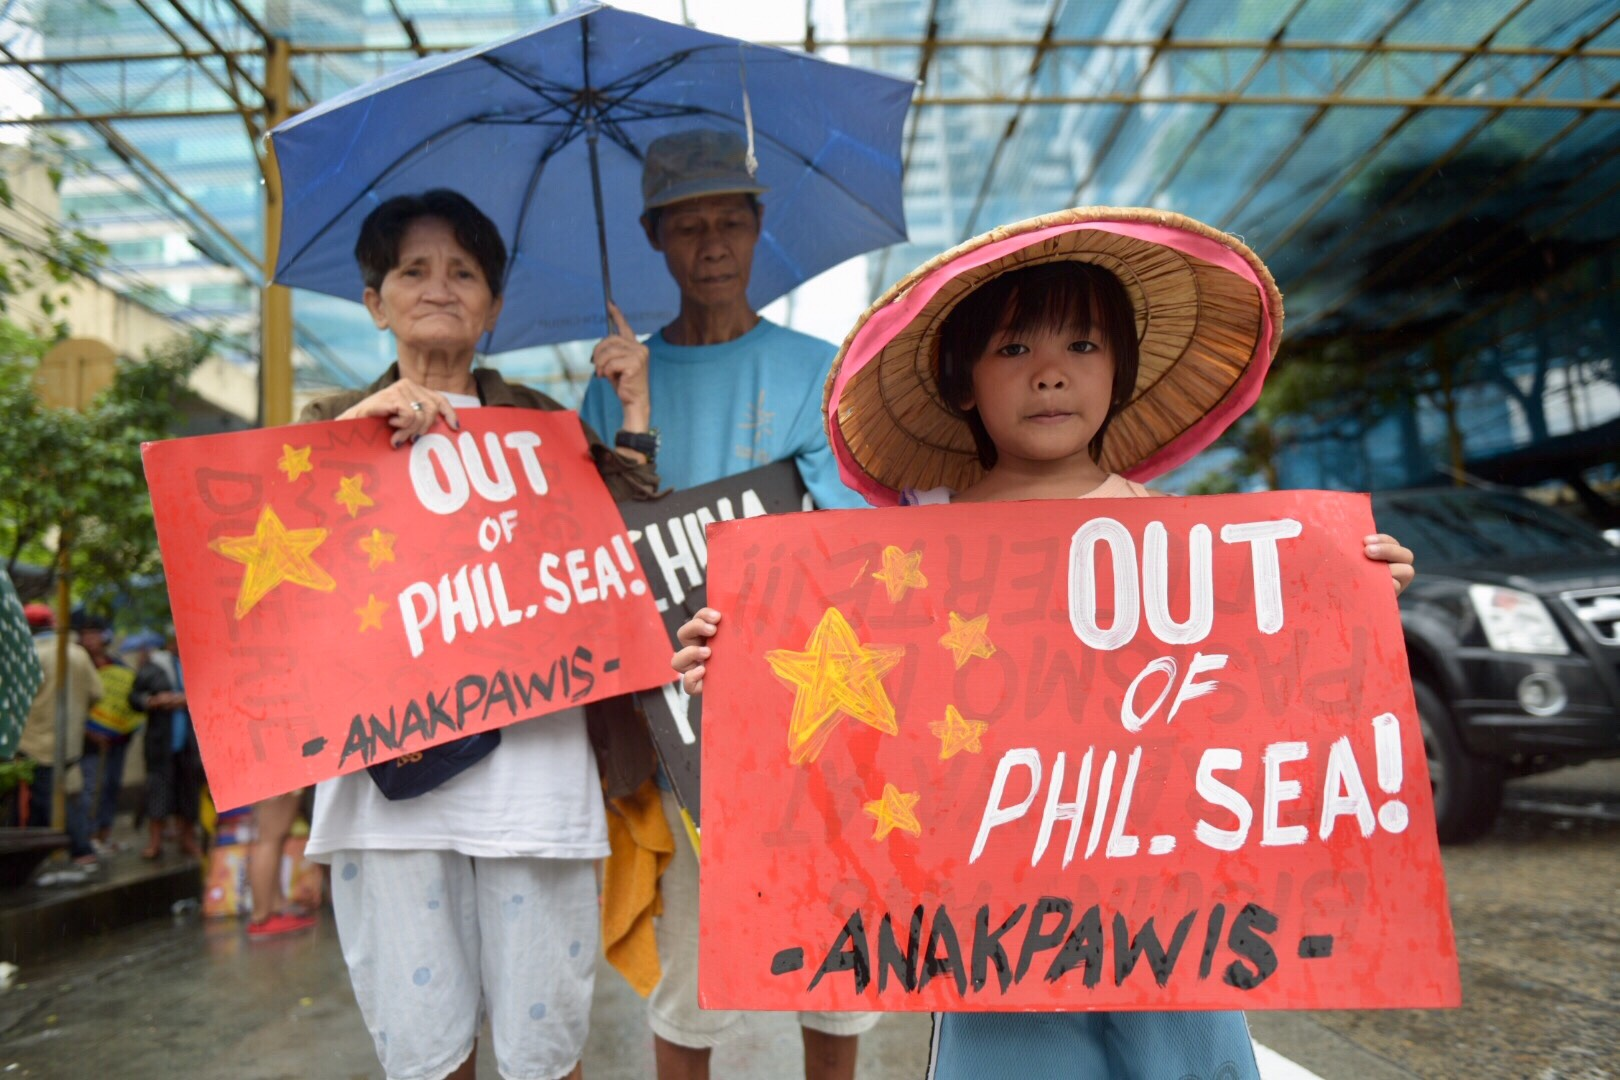 PROTEST. A militant group protests at the Chinese consulate in Makati City on June 12, 2018, Independence Day, to ask President Duterte to end tolerance of China's incursions in the West Philippine Sea. Photo by LeAnne Jazul/Rappler